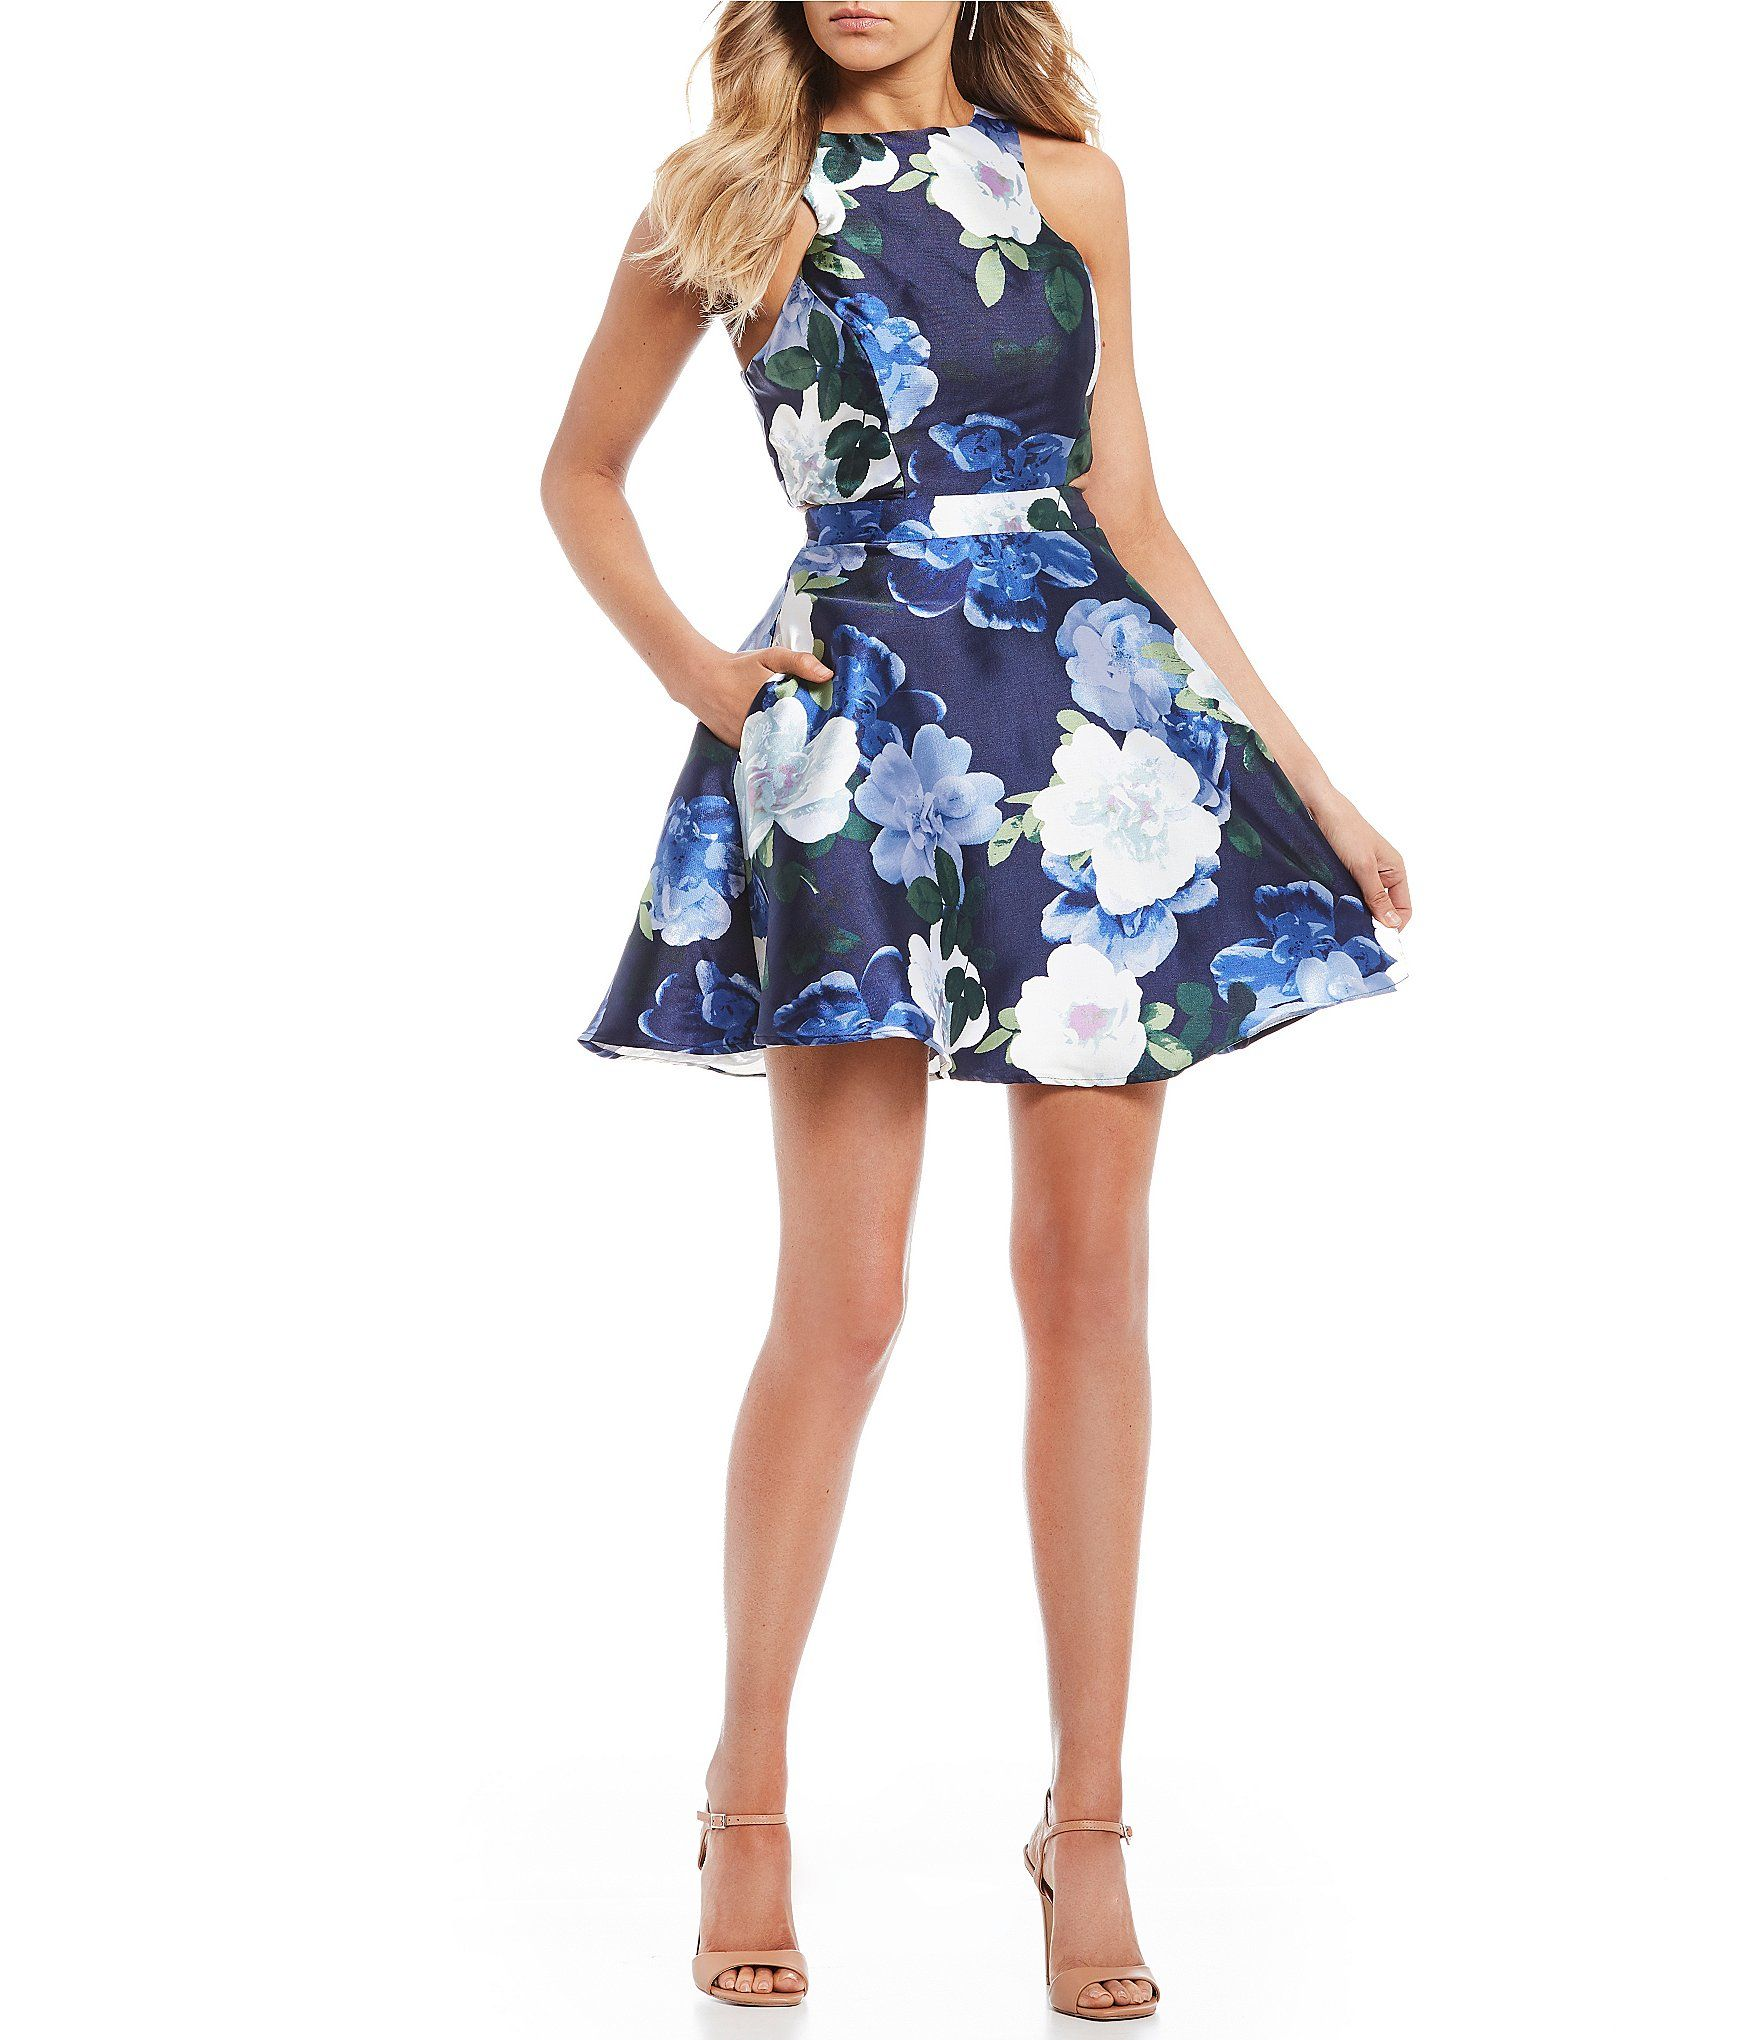 53d83bc39 Shop for Xtraordinary Floral Print Side Cut Out Fit-and-Flare Dress at  Dillards.com. Visit Dillards.com to find clothing, accessories, shoes, ...